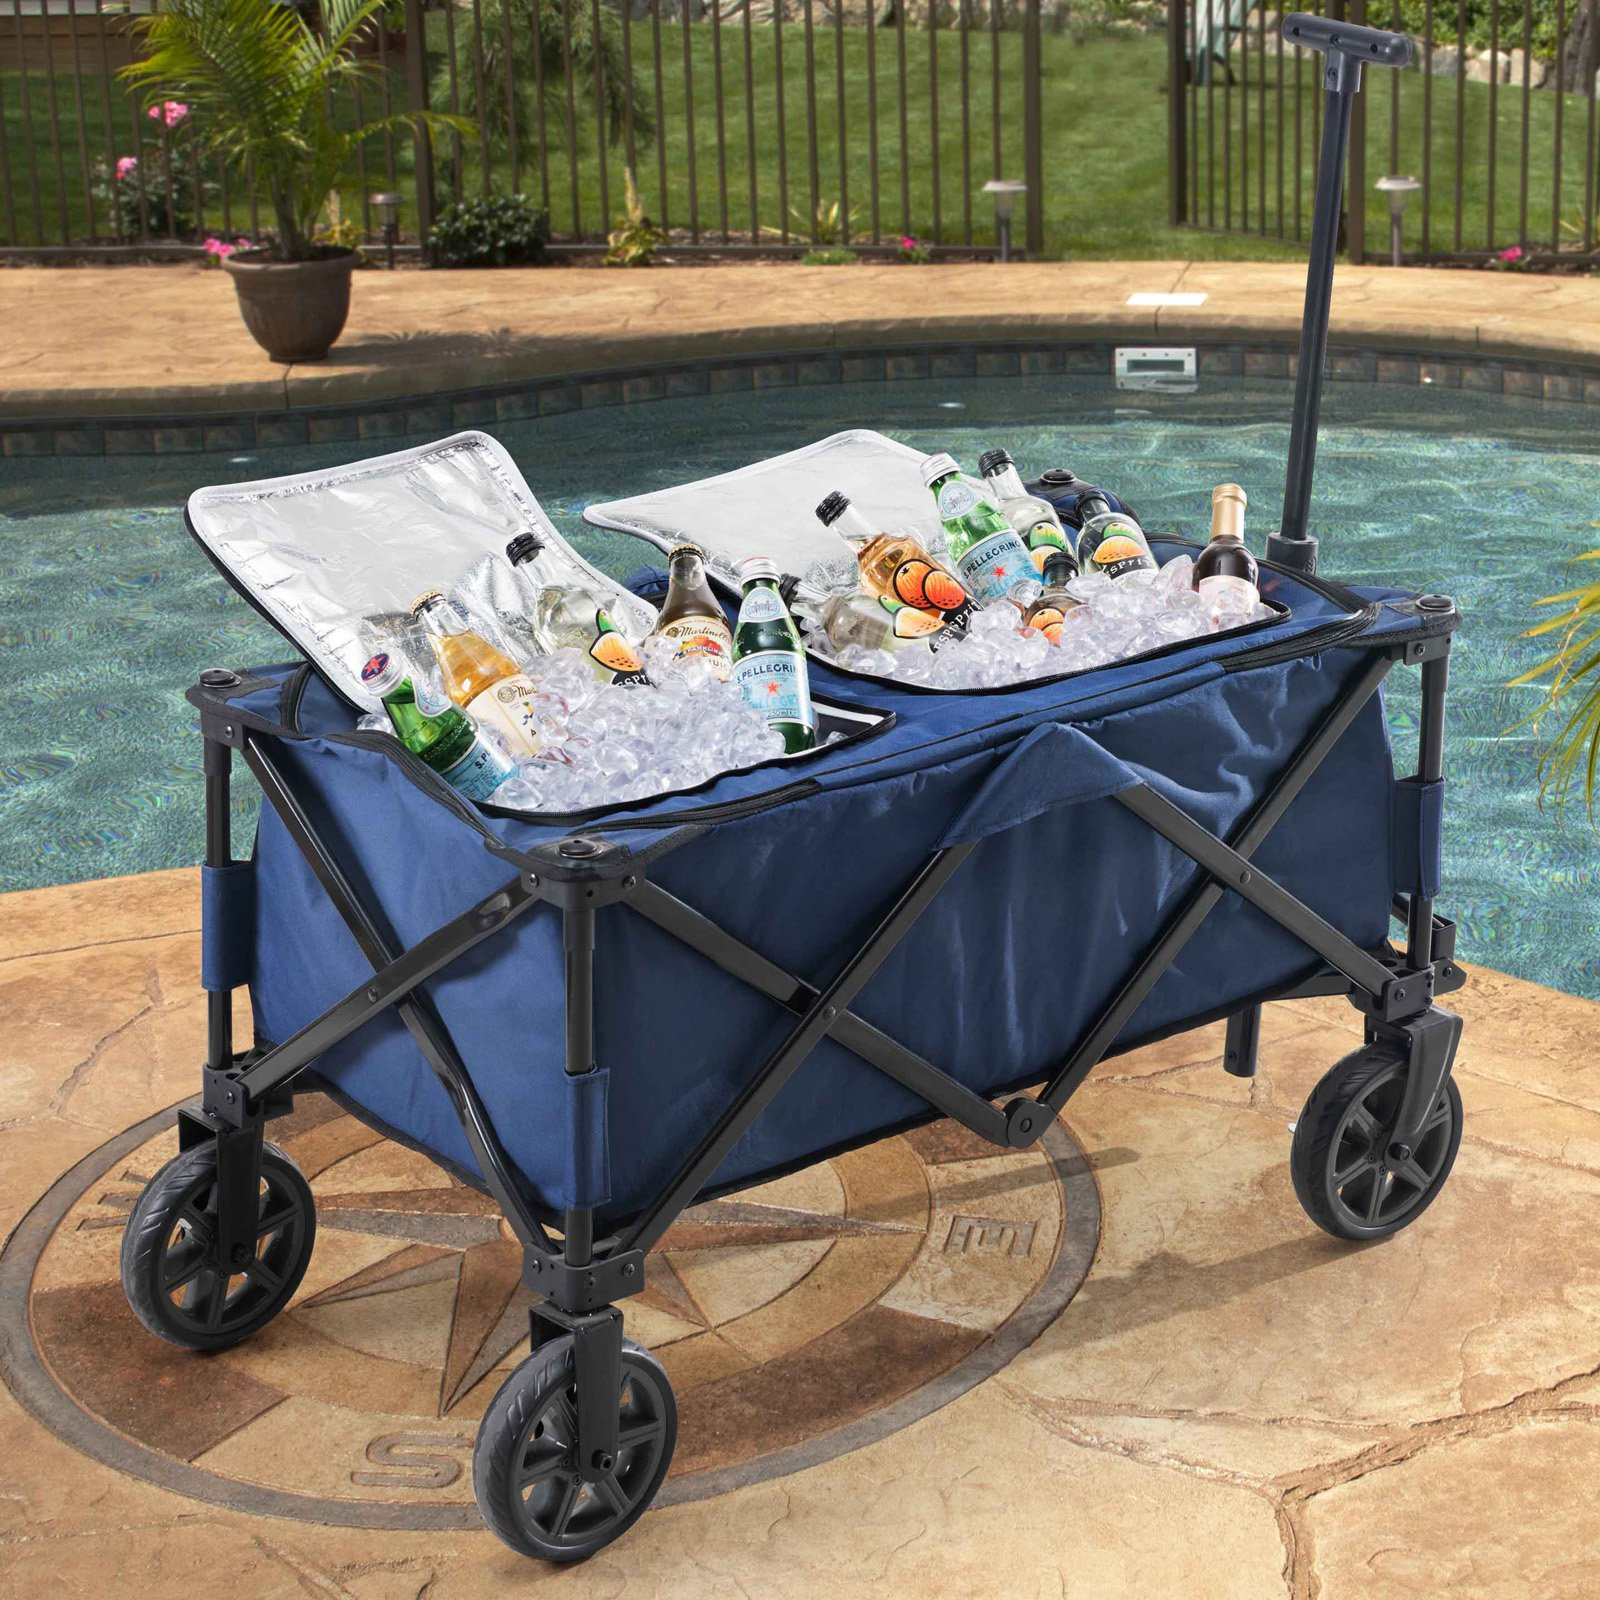 Sunjoy Cooler wagon